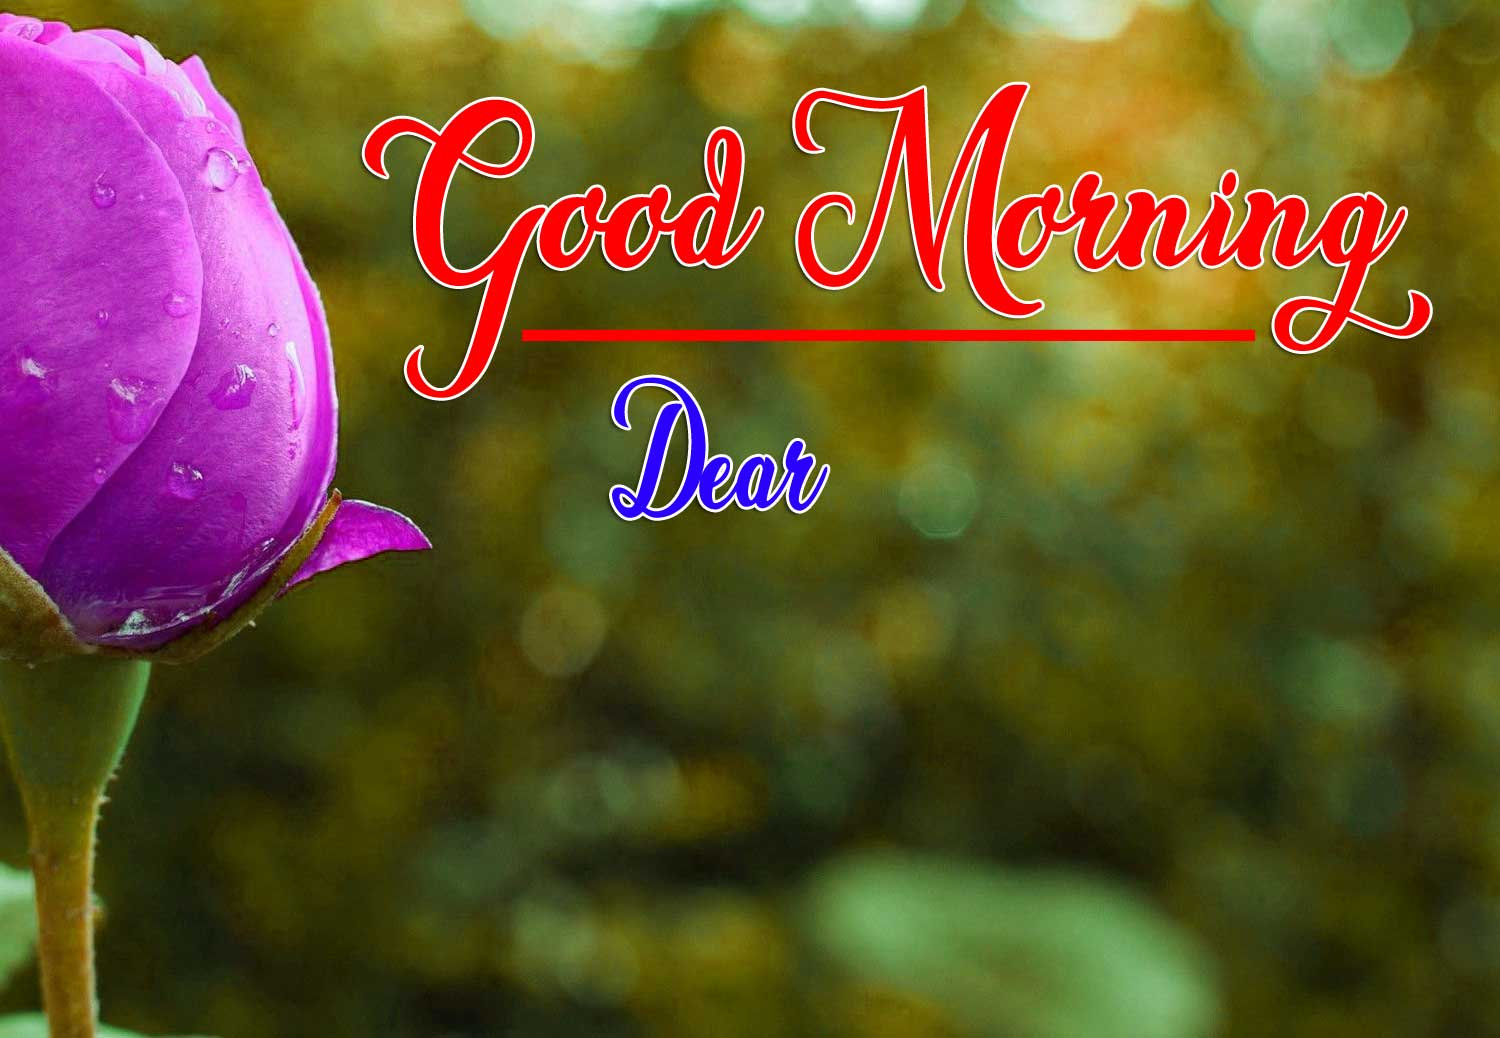 Good Morning Wishes Wallpaper Pics Download for Whatsapp